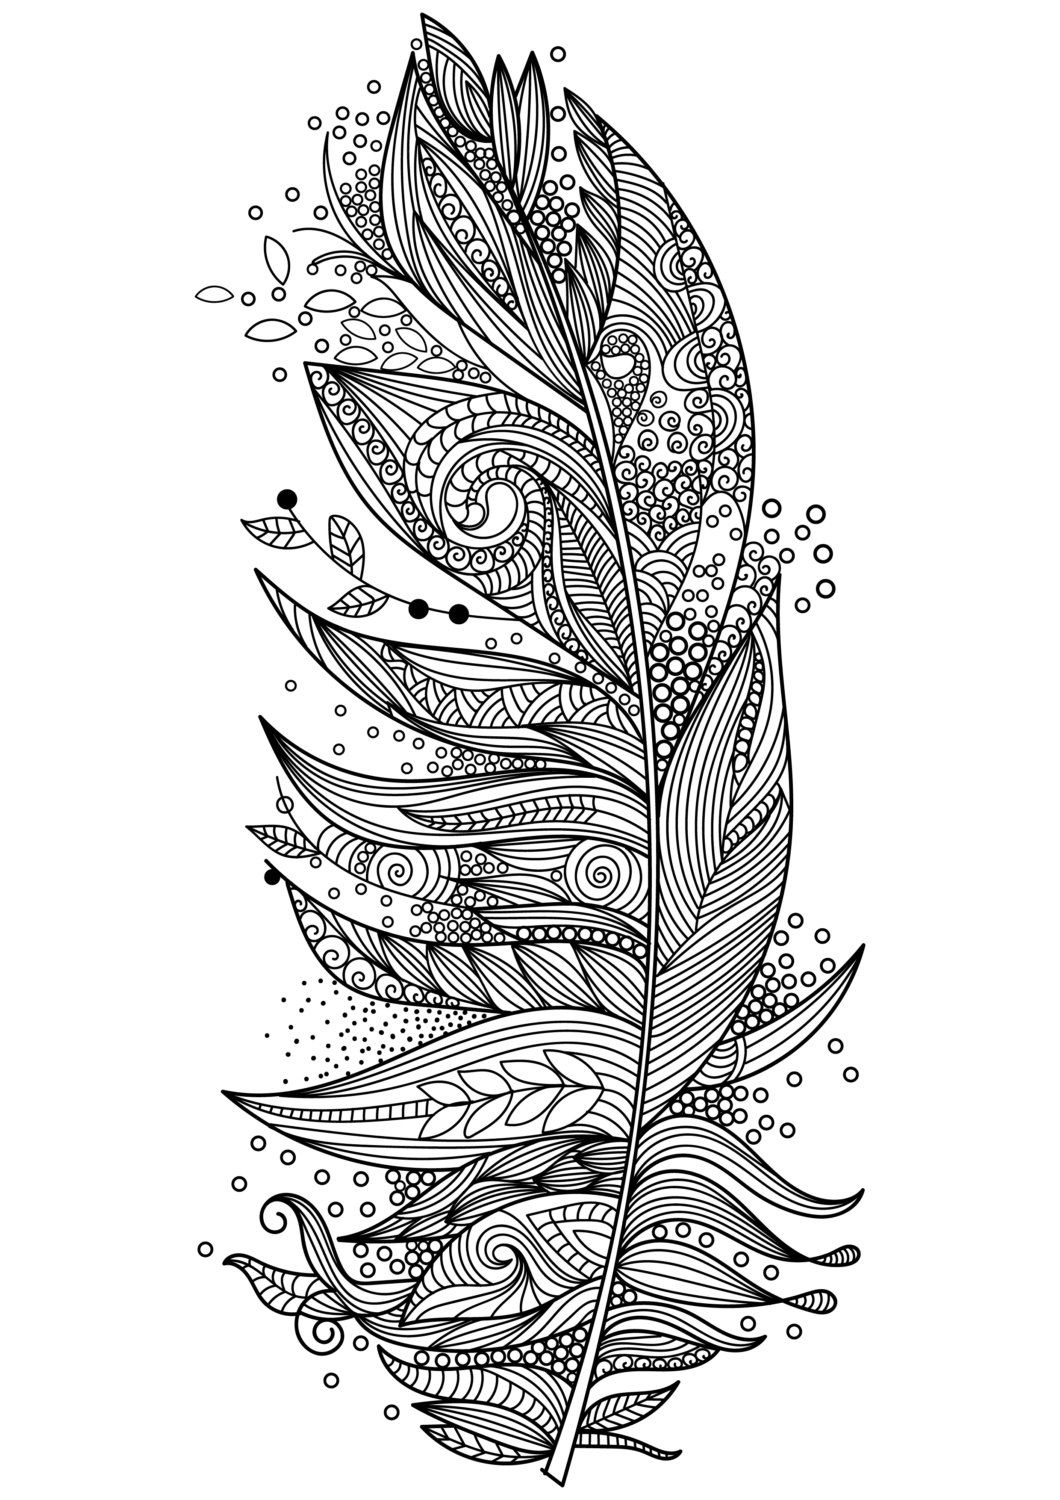 Coloring Pages for Adult Adult Coloring Pages Adult Coloring Book